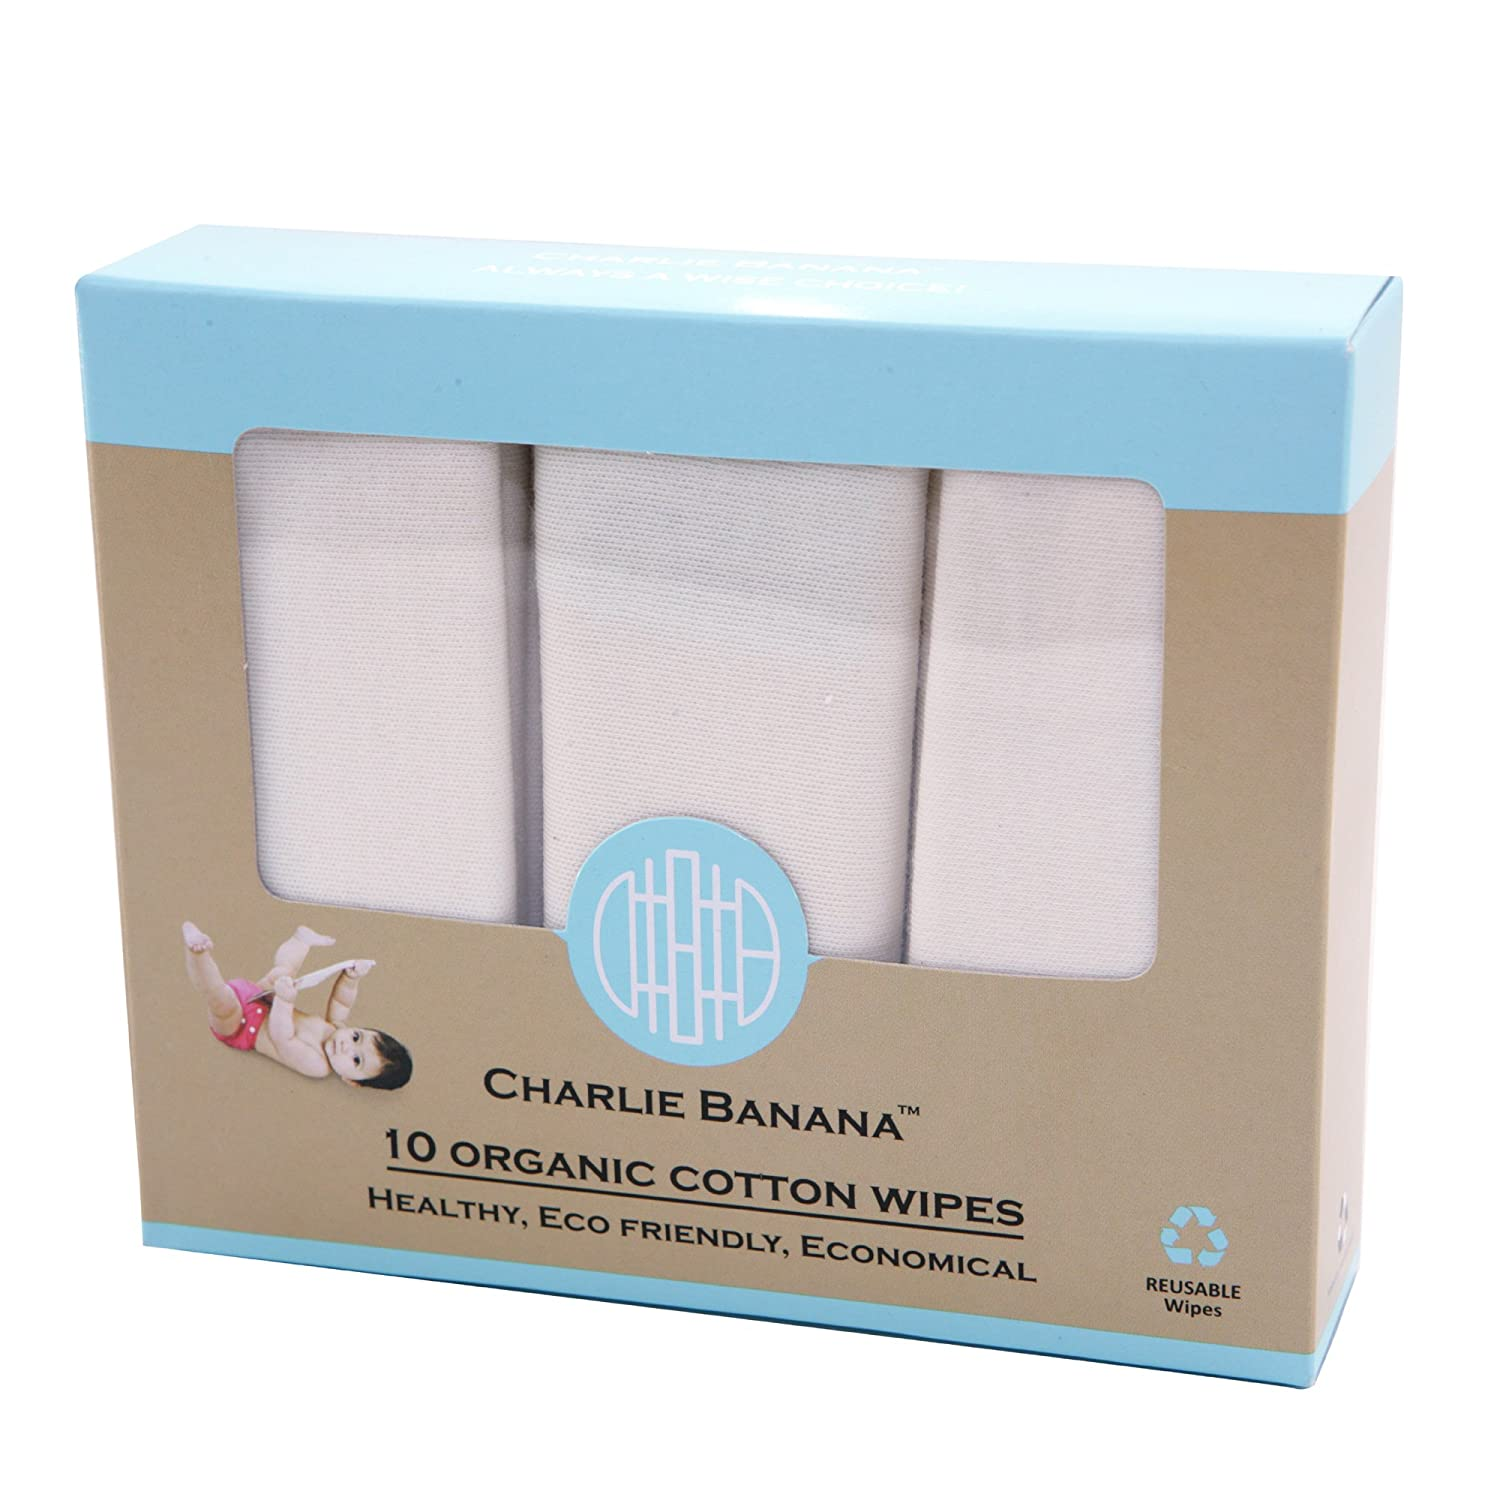 Charlie Banana 10 Organic Cotton Wipes Winc Design Limited 889196